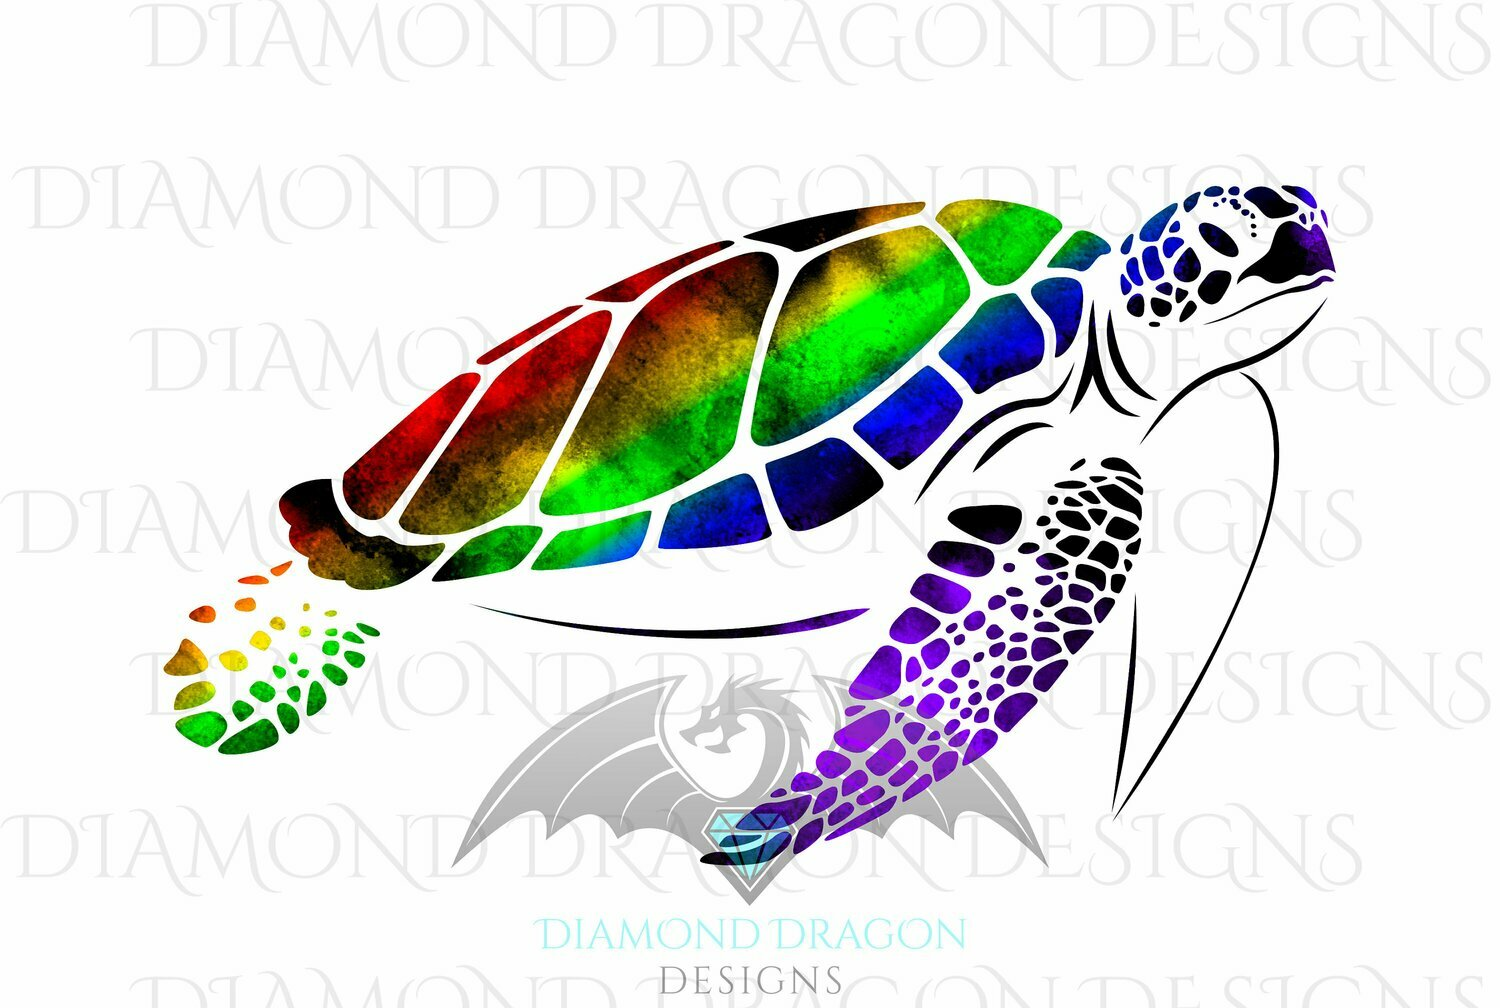 Turtles - Sea Turtle, Watercolor Sea Turtle, Rainbow Sea Turtle, Digital Image